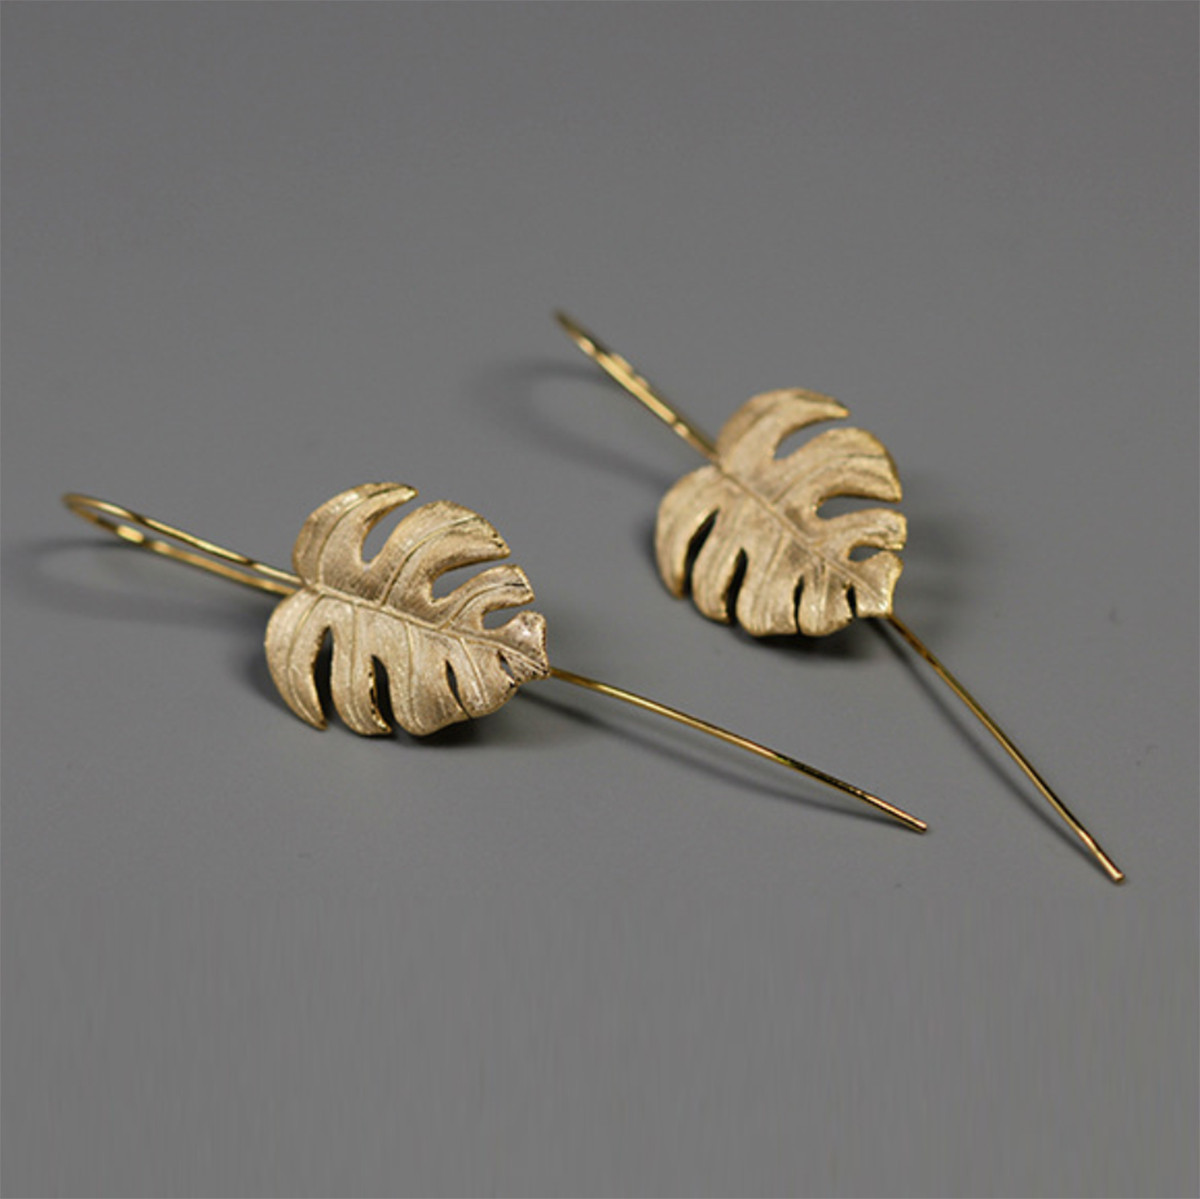 5e949e2cc ... Monstera Deliciosa Leaf Earrings.  Botanic_garden_collection_sterling_silver_gold_plating_monstera_deliciosa_leaf_earrings_handmade.  Loading zoom